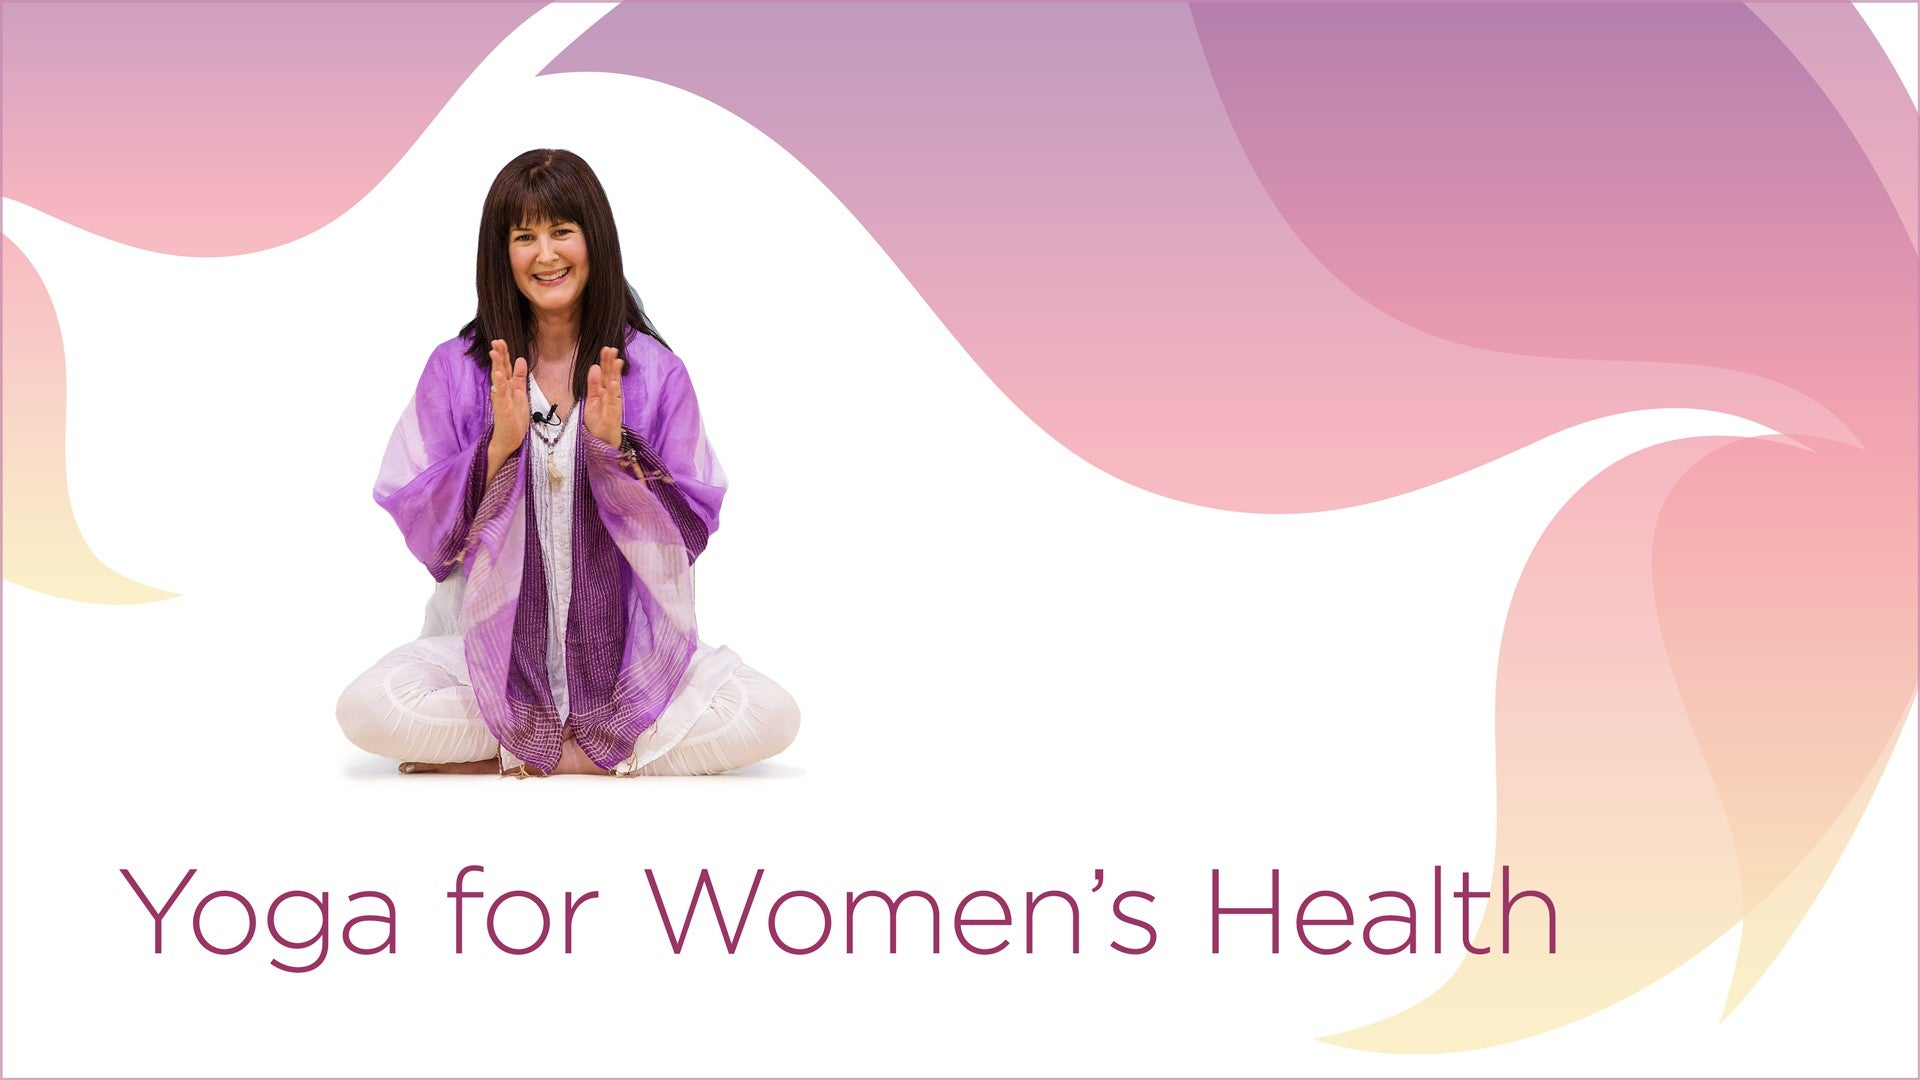 Yoga for Women's Health Artwork